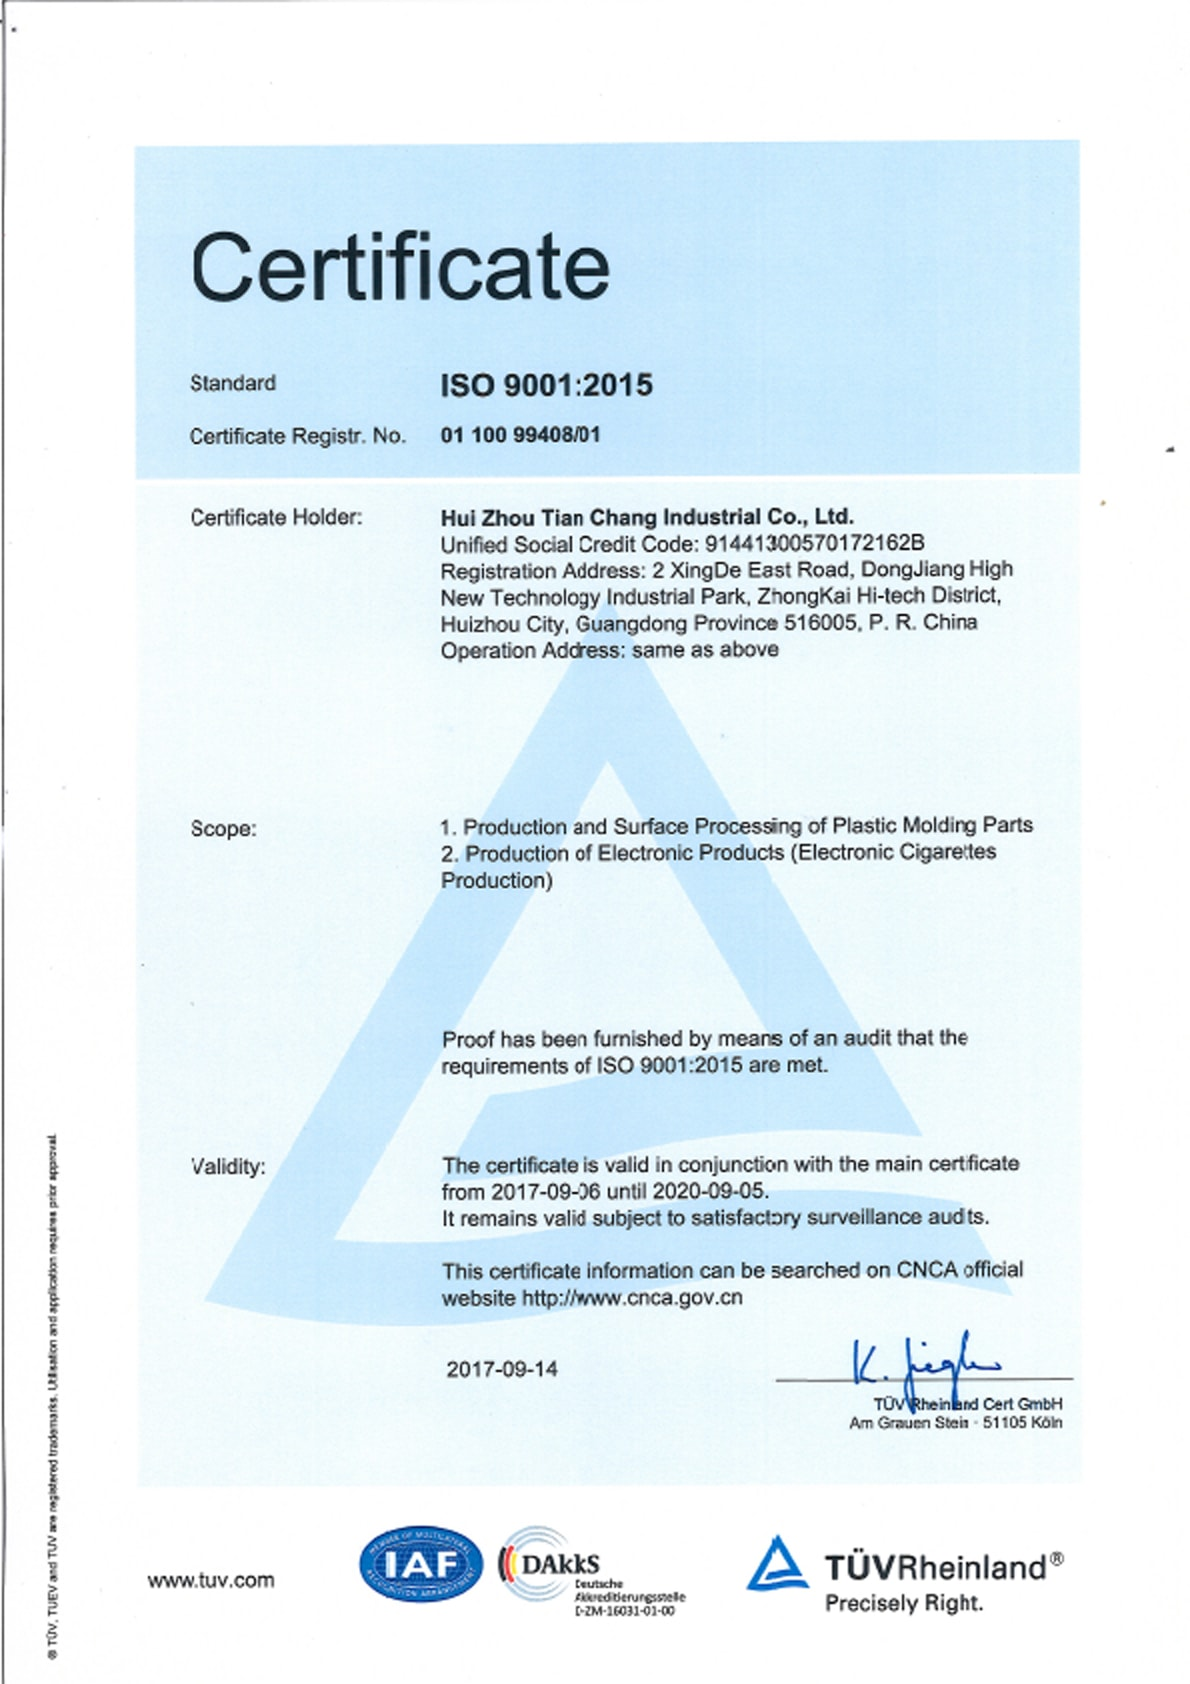 Tian Chang Group Holdings - Quality Certifications